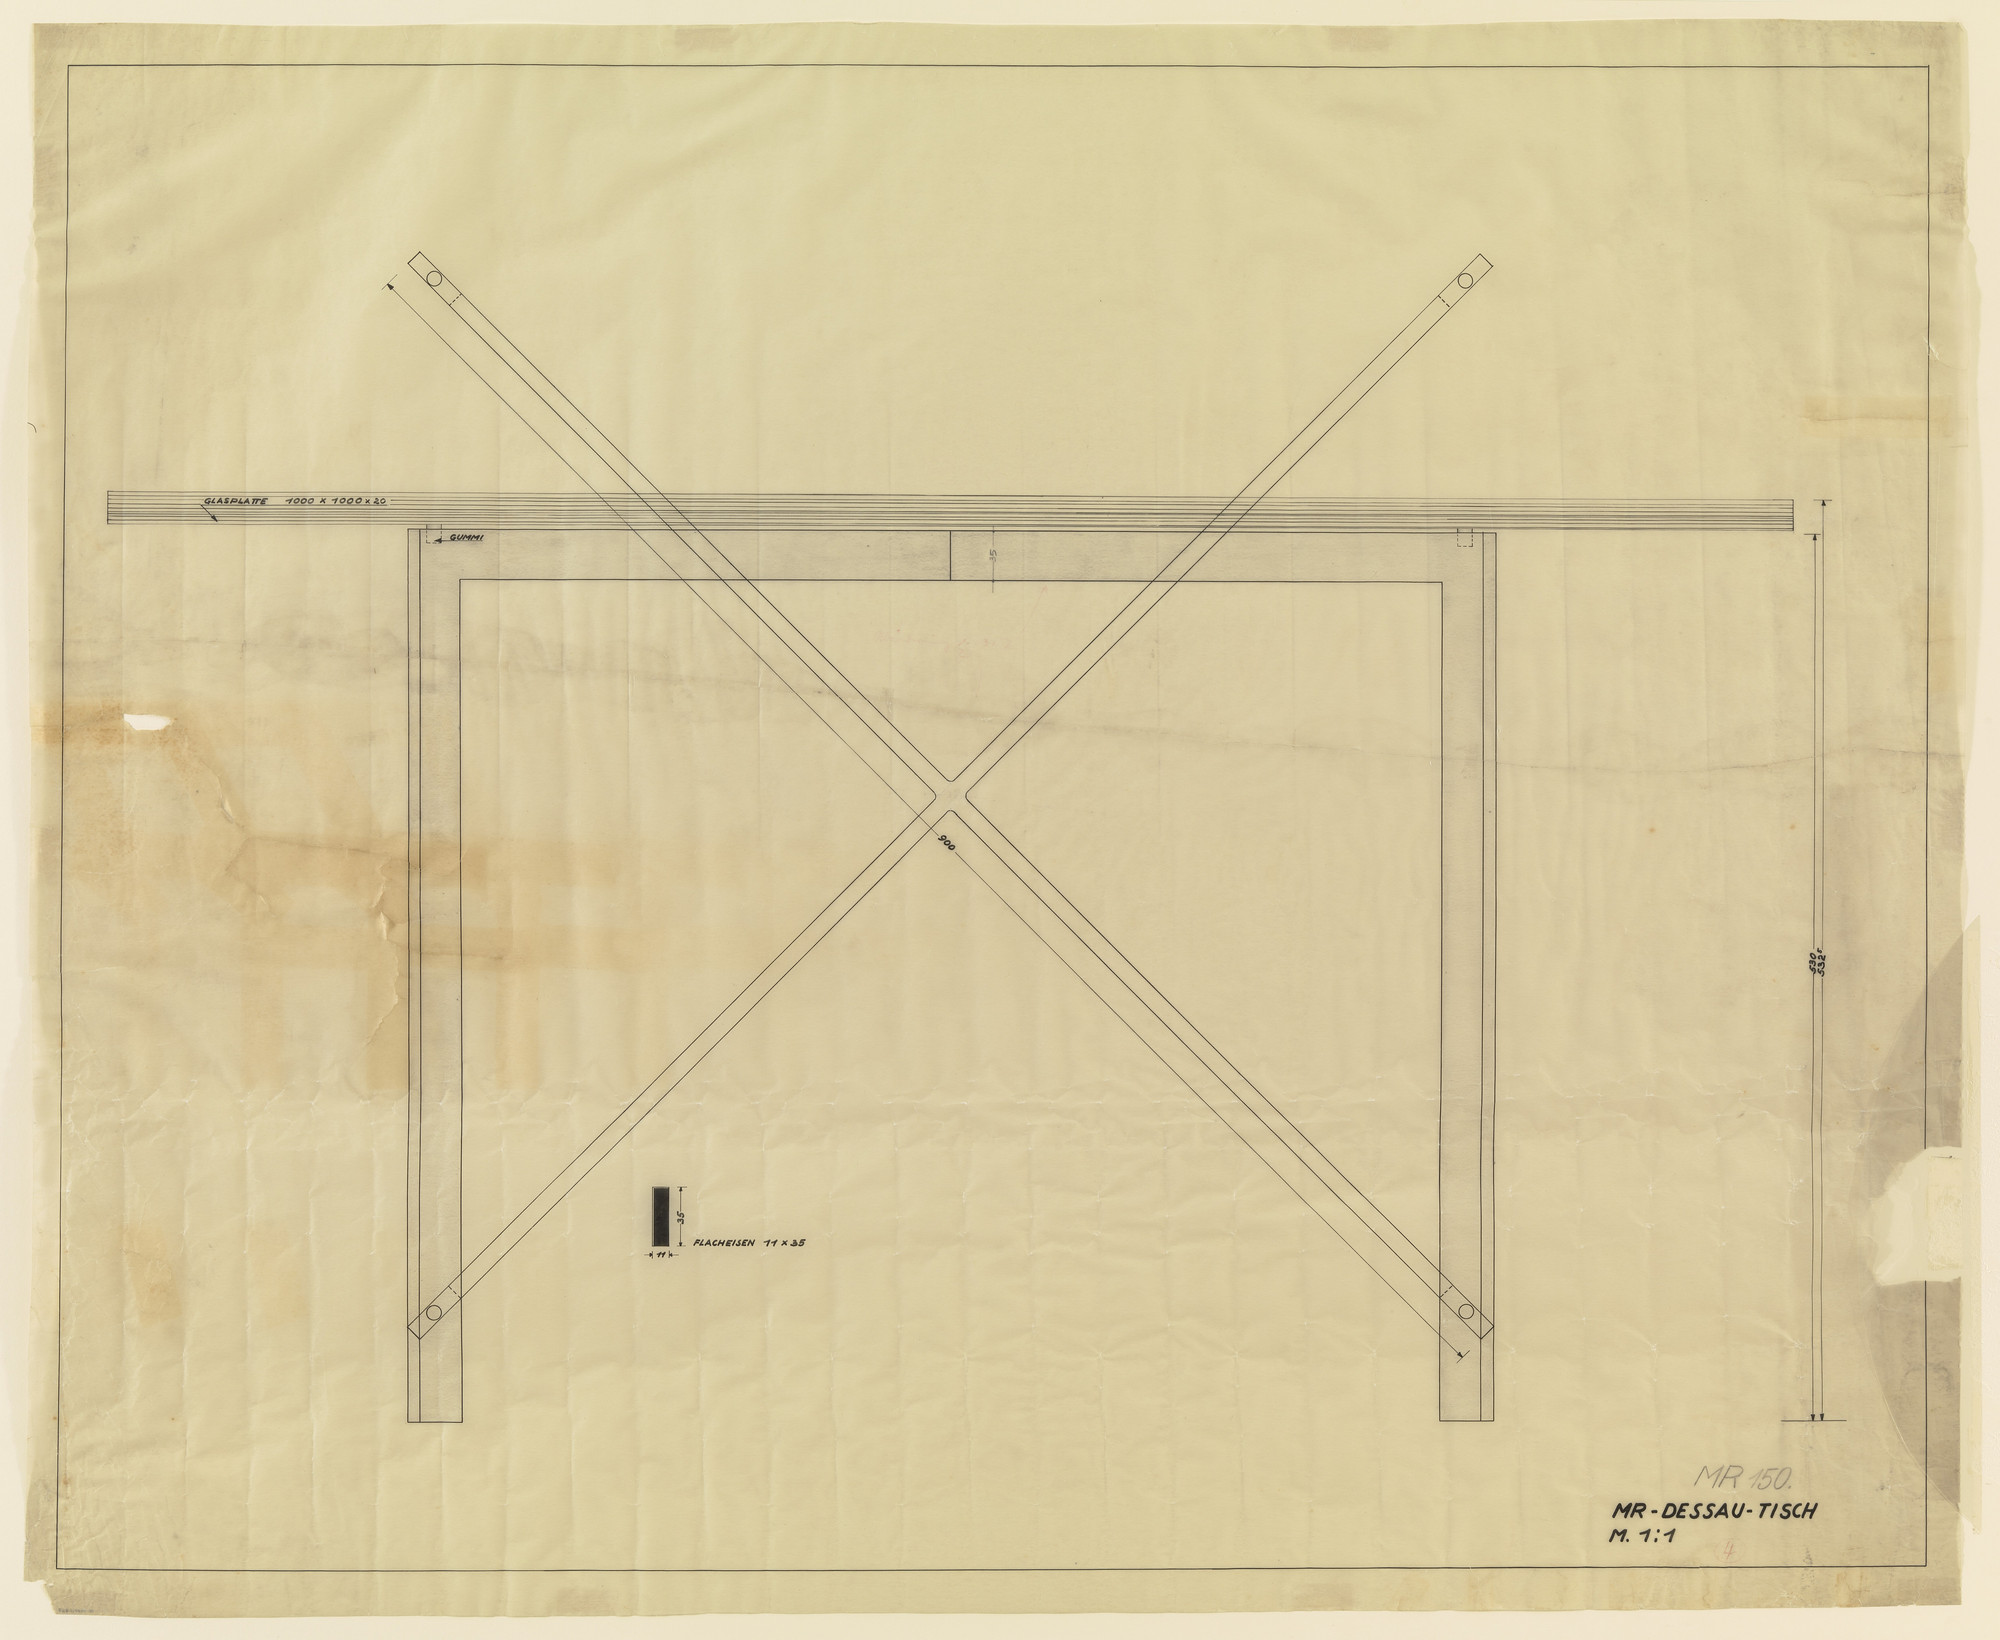 Ludwig Mies van der Rohe. Glass table (Plan and elevation). 1931-1932